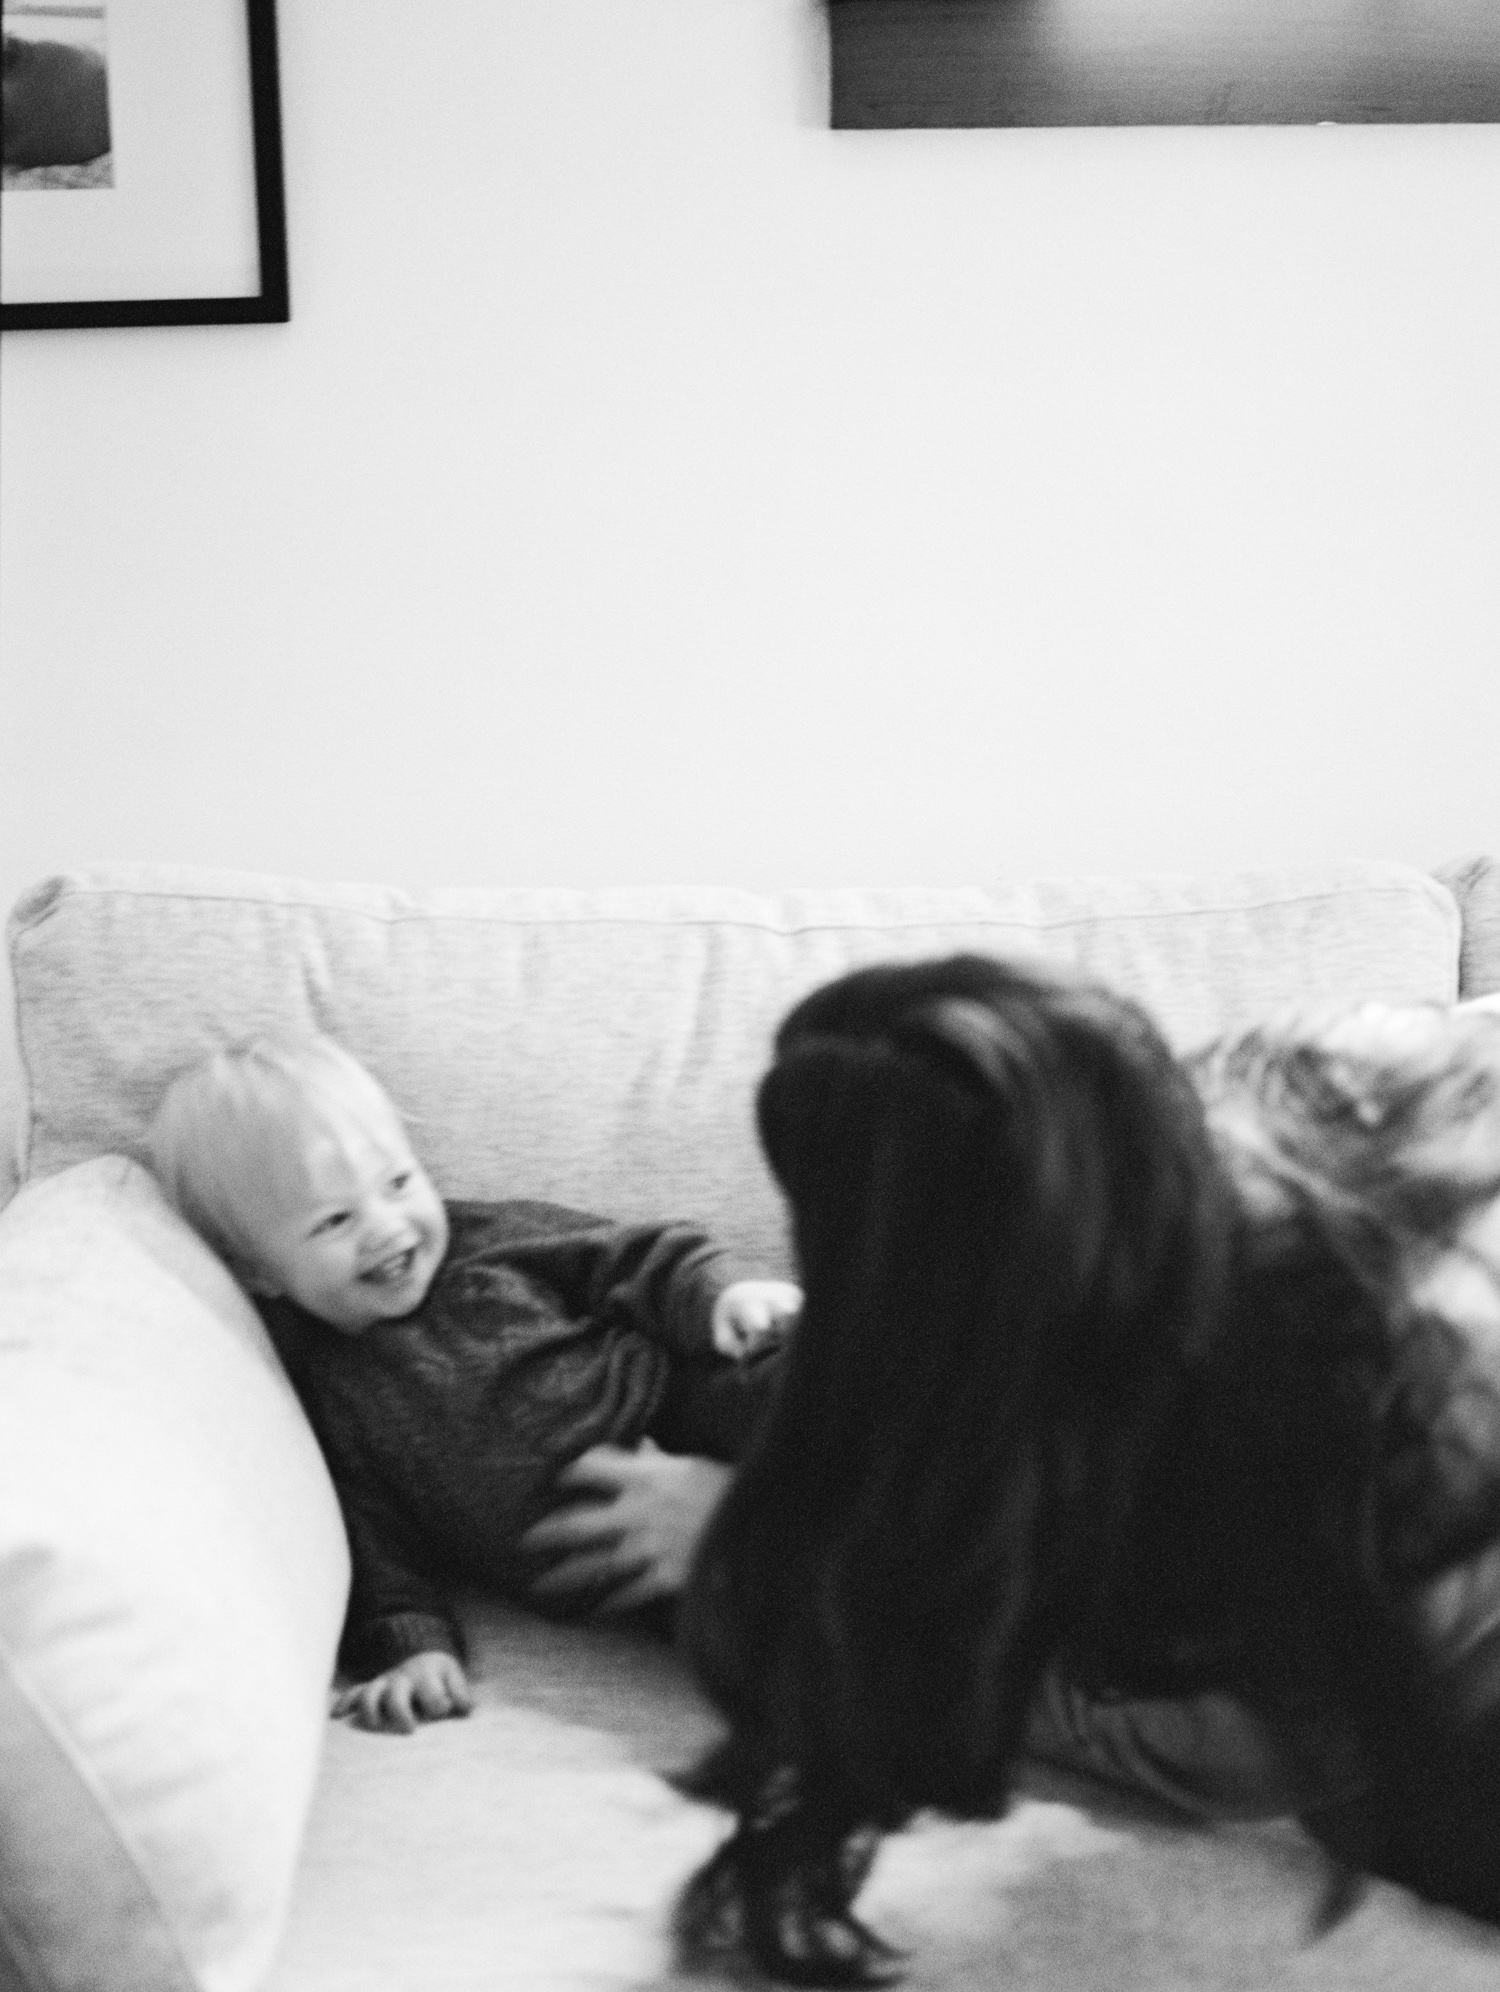 A mother tickles her son on their couch during their at home family photos in Royal Oak